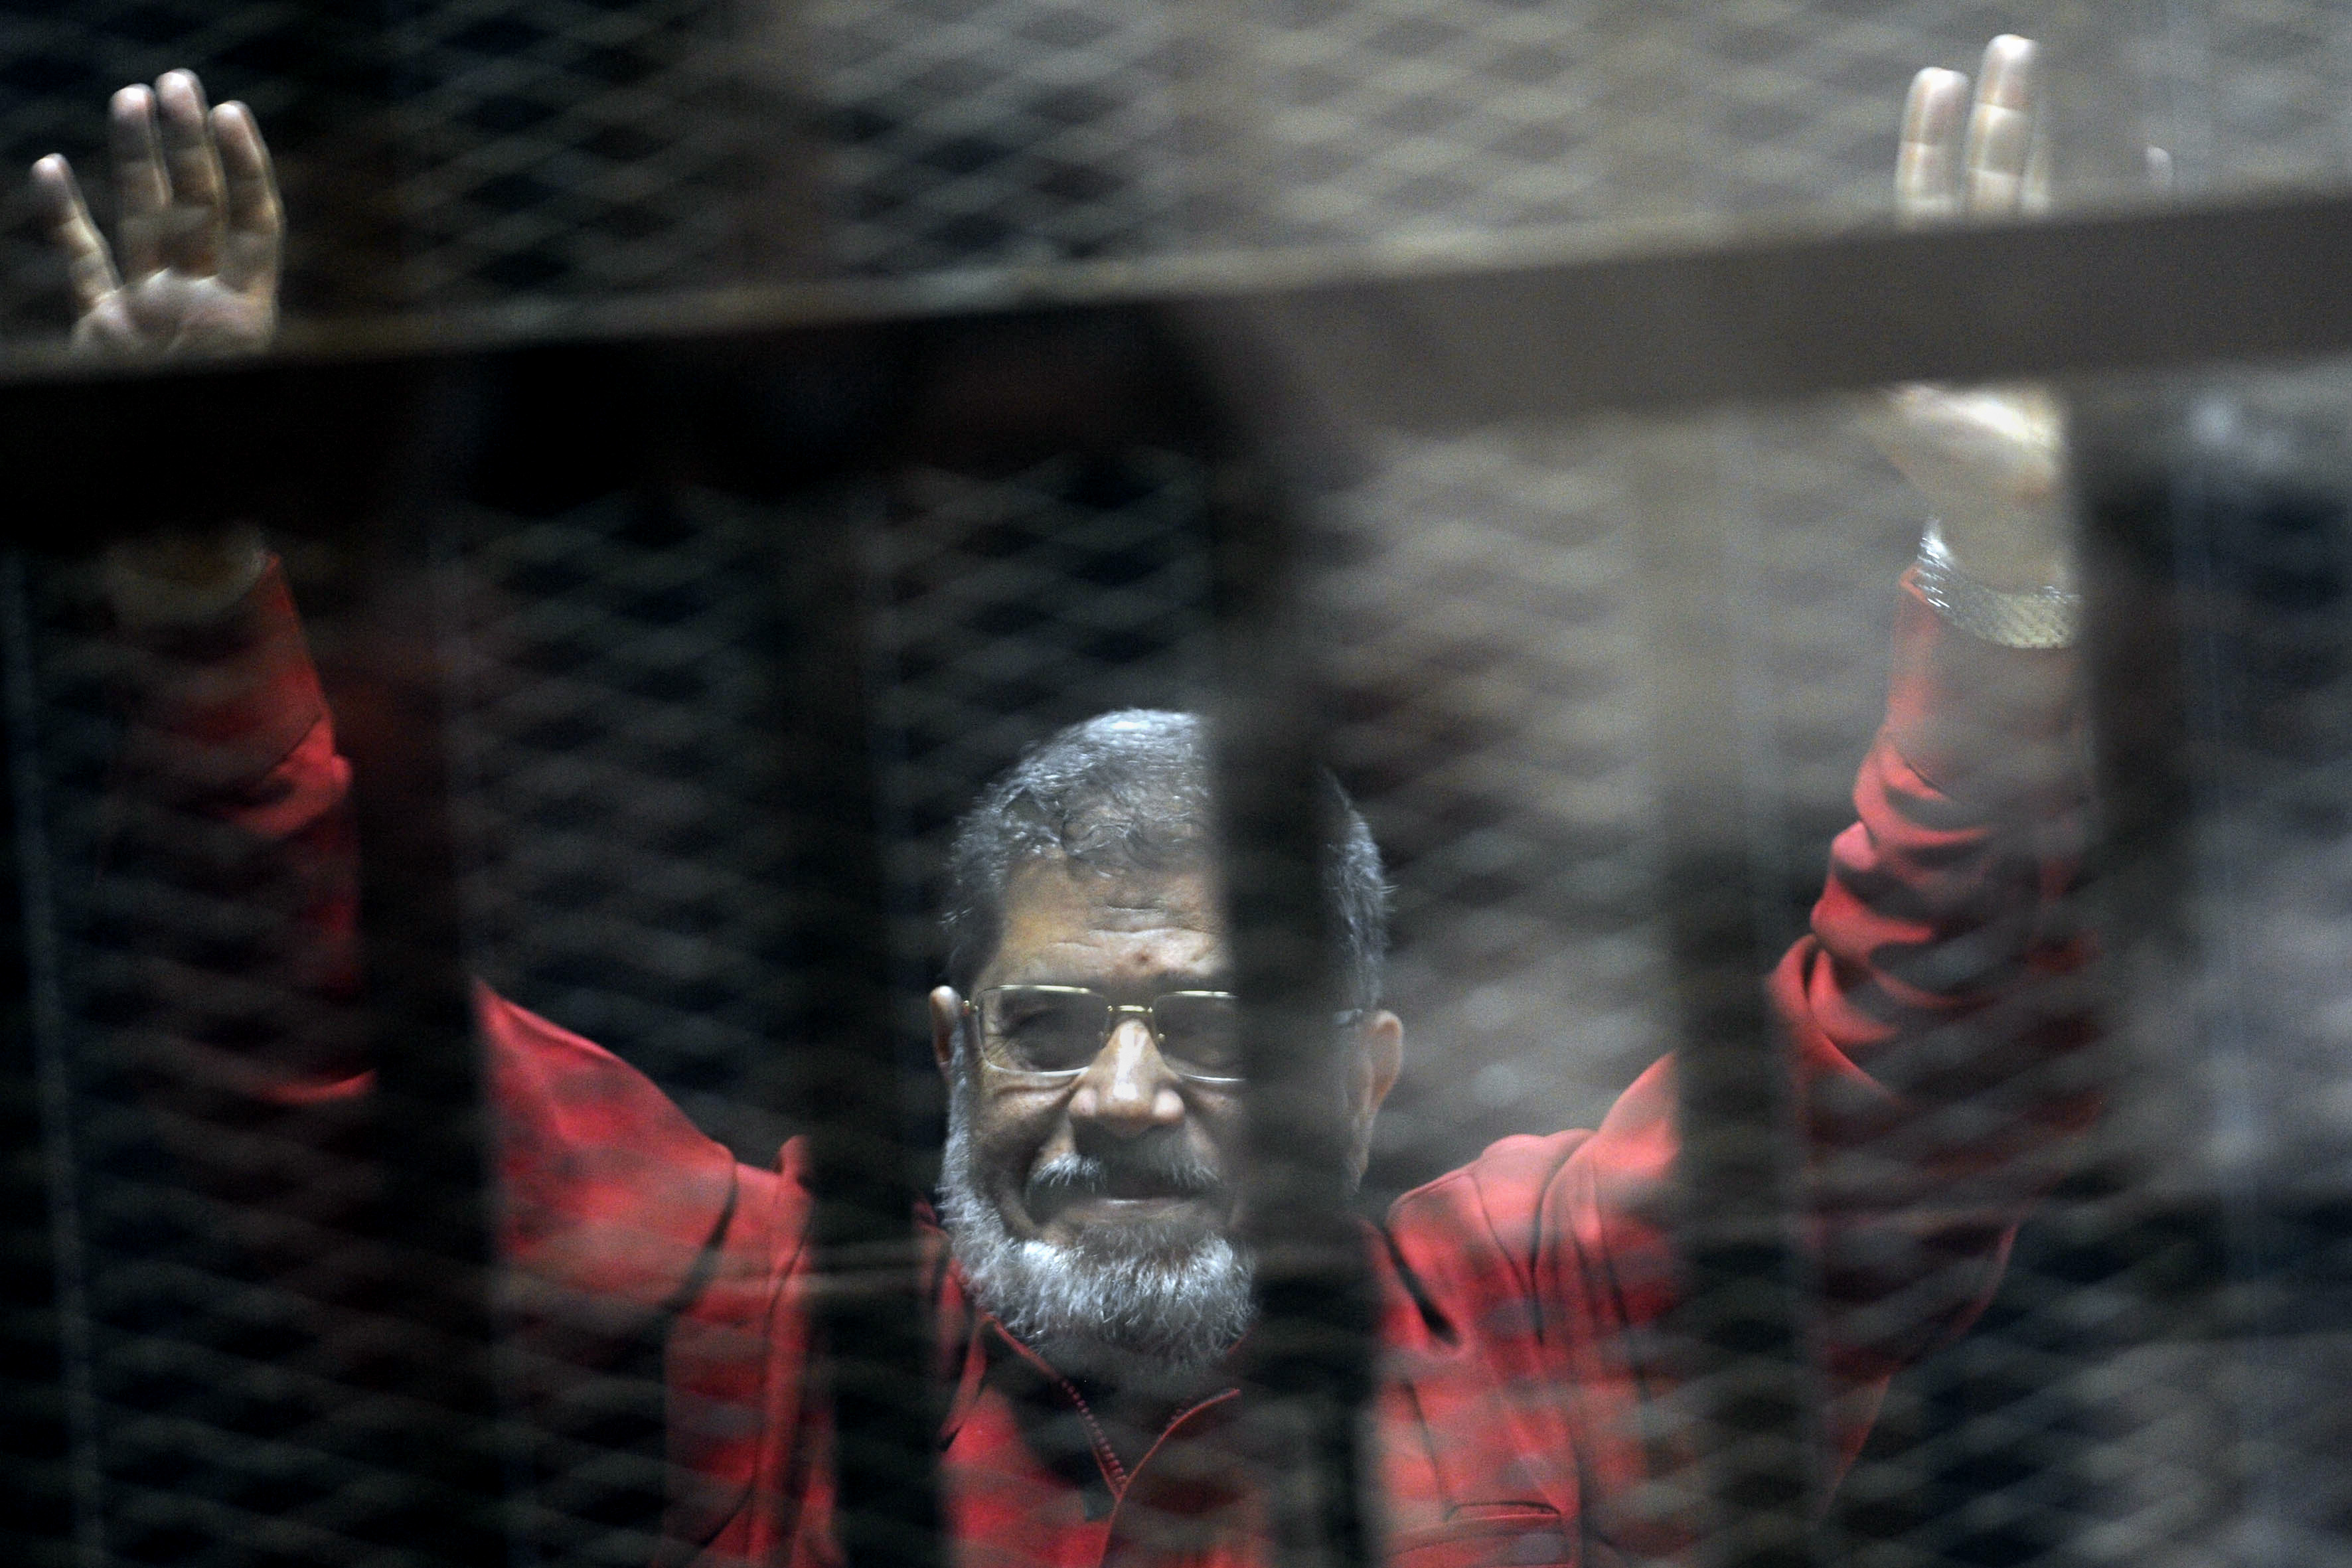 Former Egyptian president Mohammed Morsi wearing a red jumpsuit in a makeshift courtroom in 2015